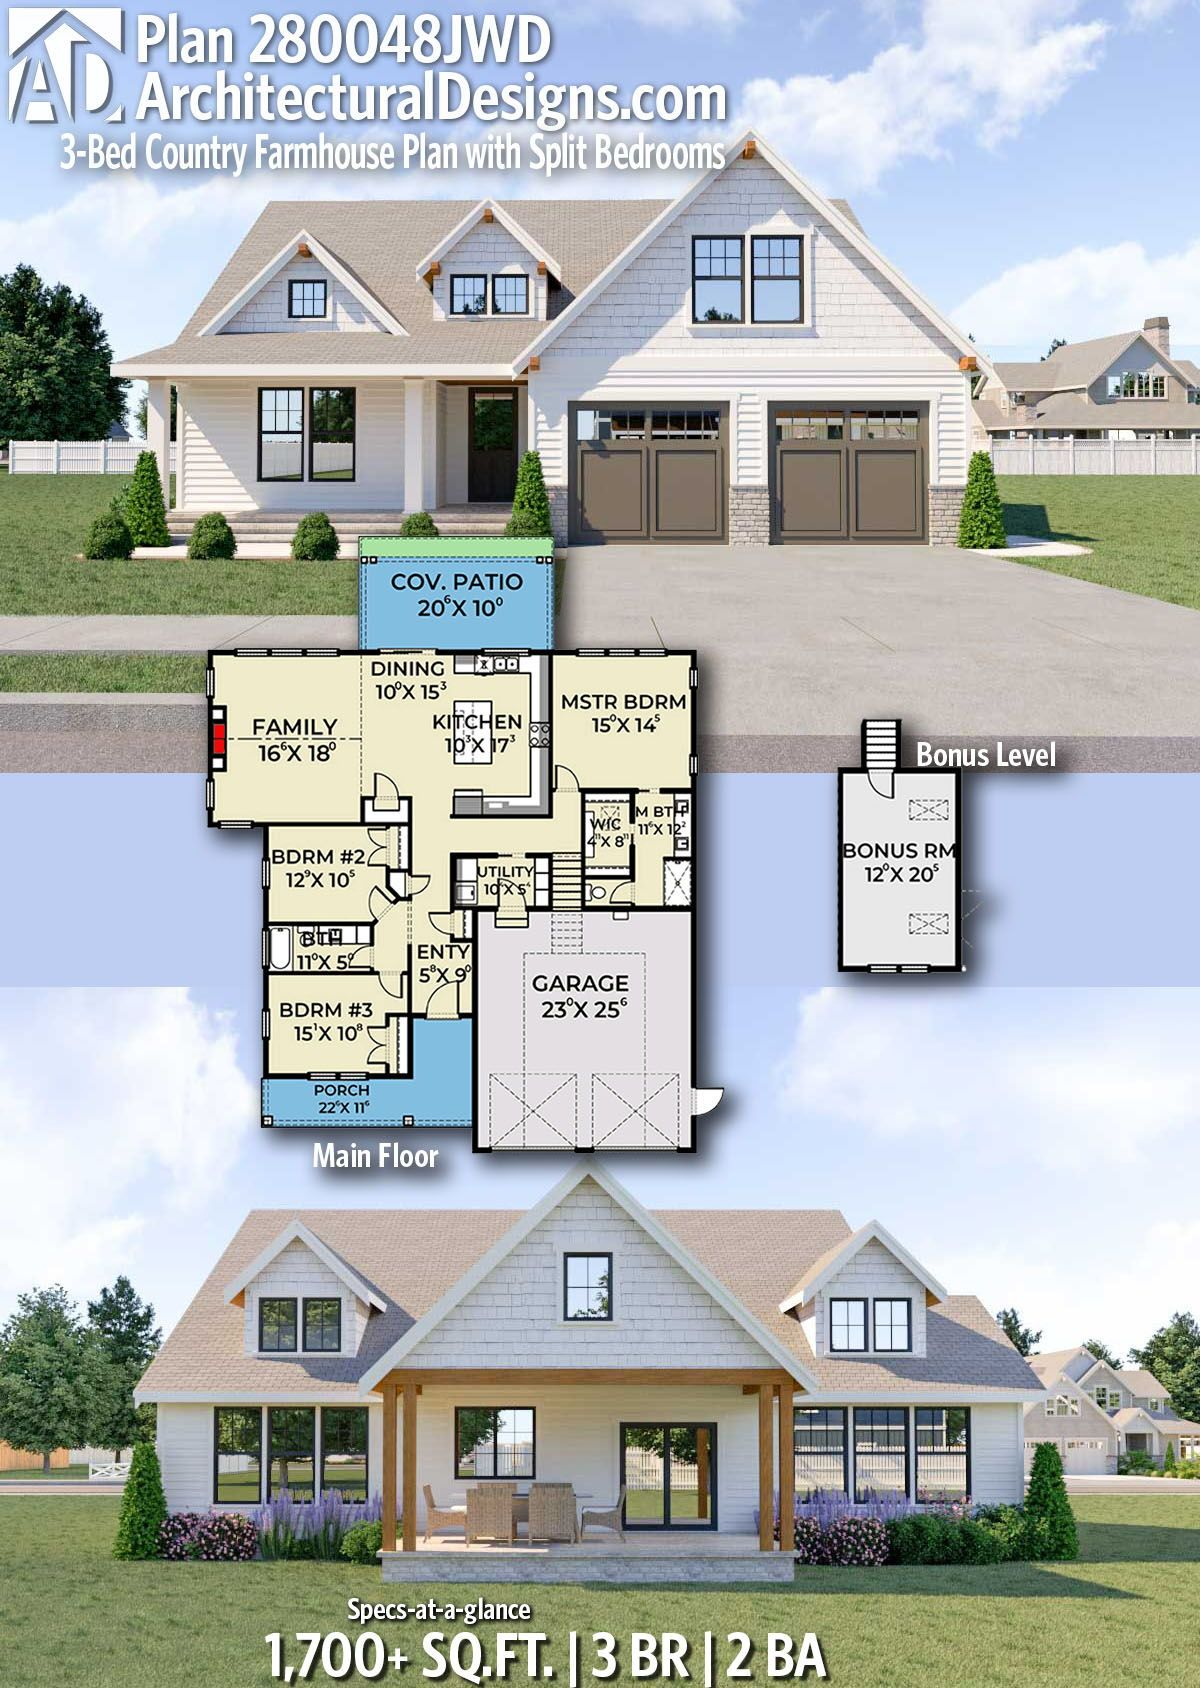 Plan 280048jwd 3 Bed Country Farmhouse Plan With Split Bedrooms Small Farmhouse Plans Modern Farmhouse Plans Farmhouse Plans